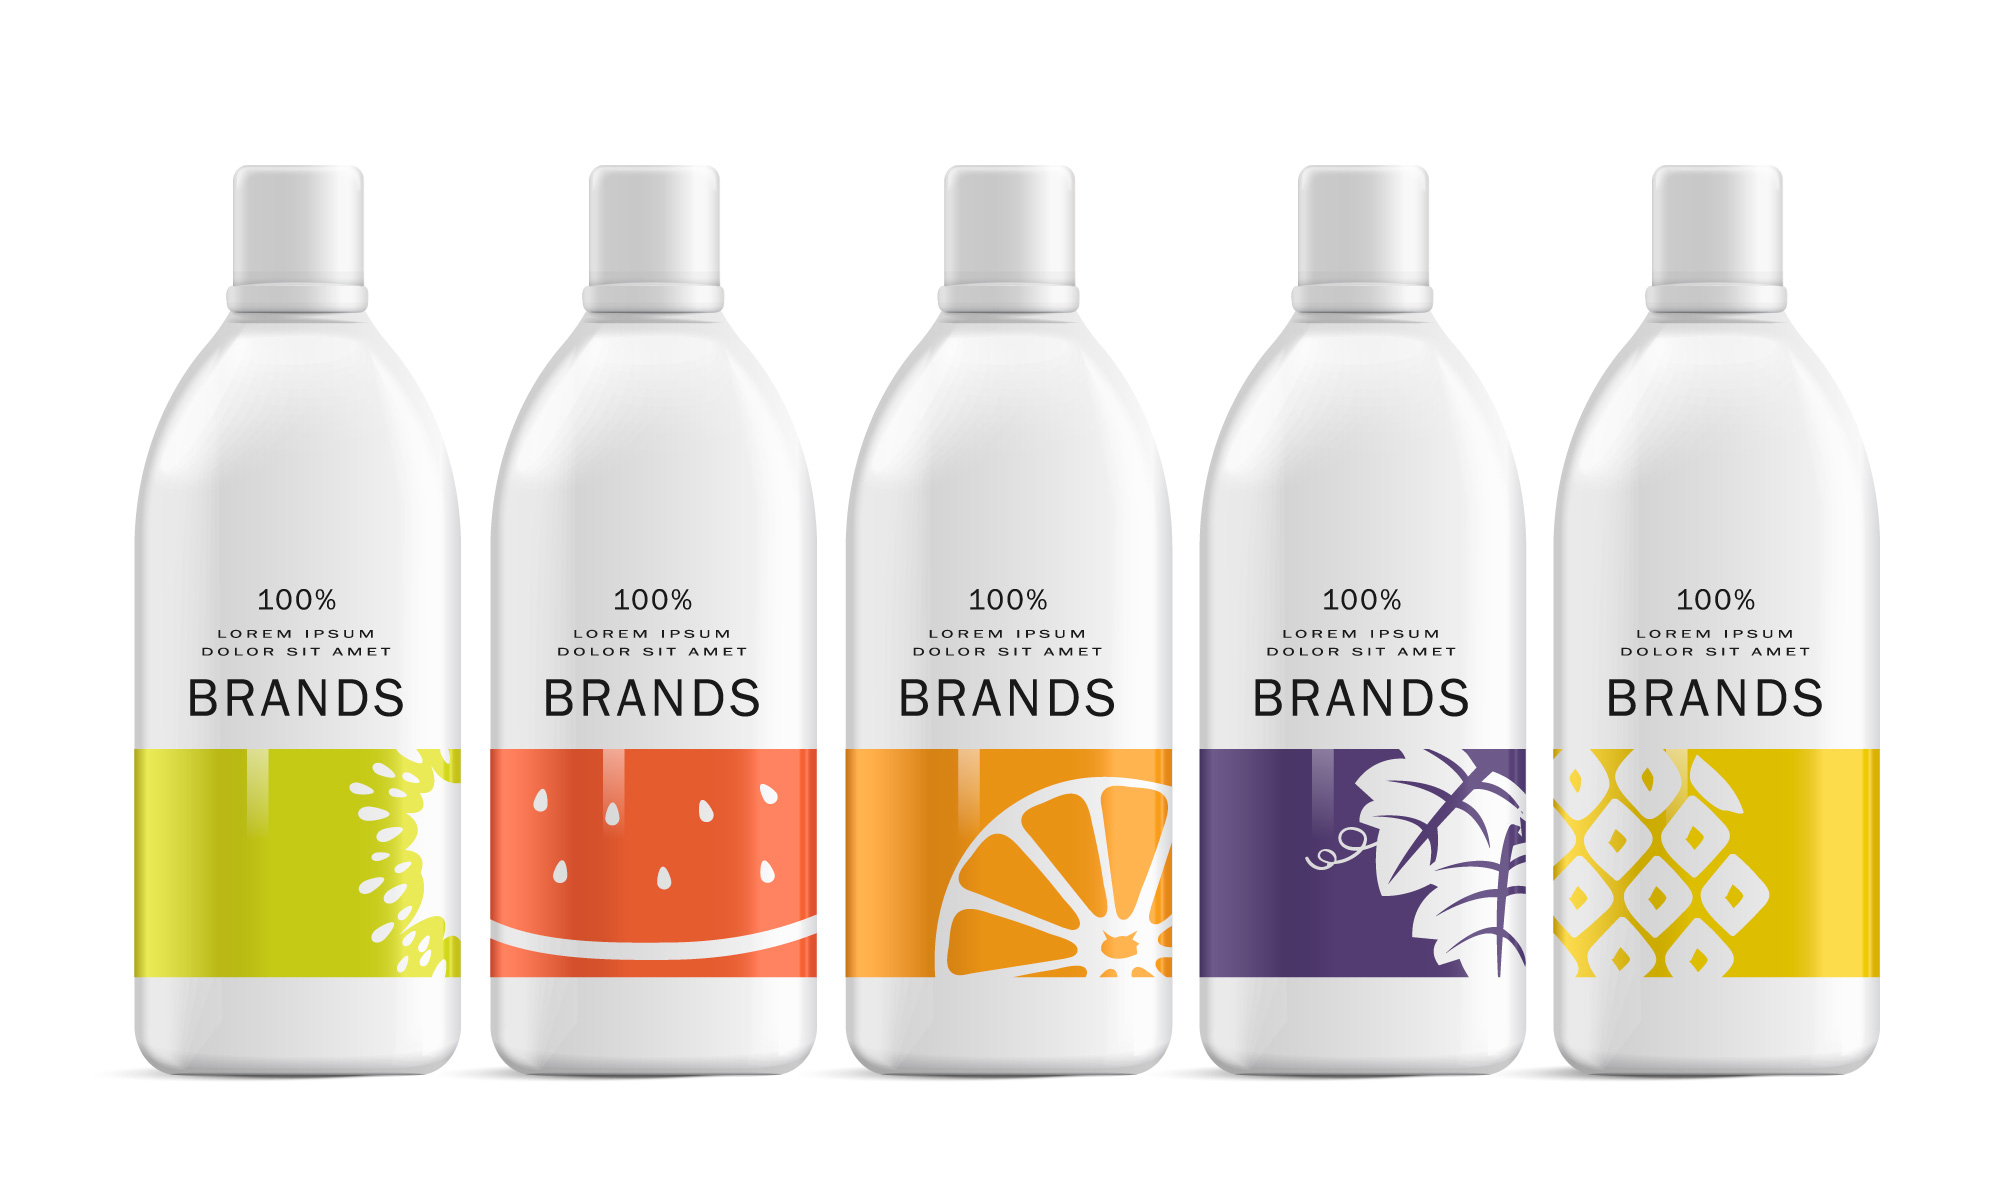 How to Use Color in Your Product Labels